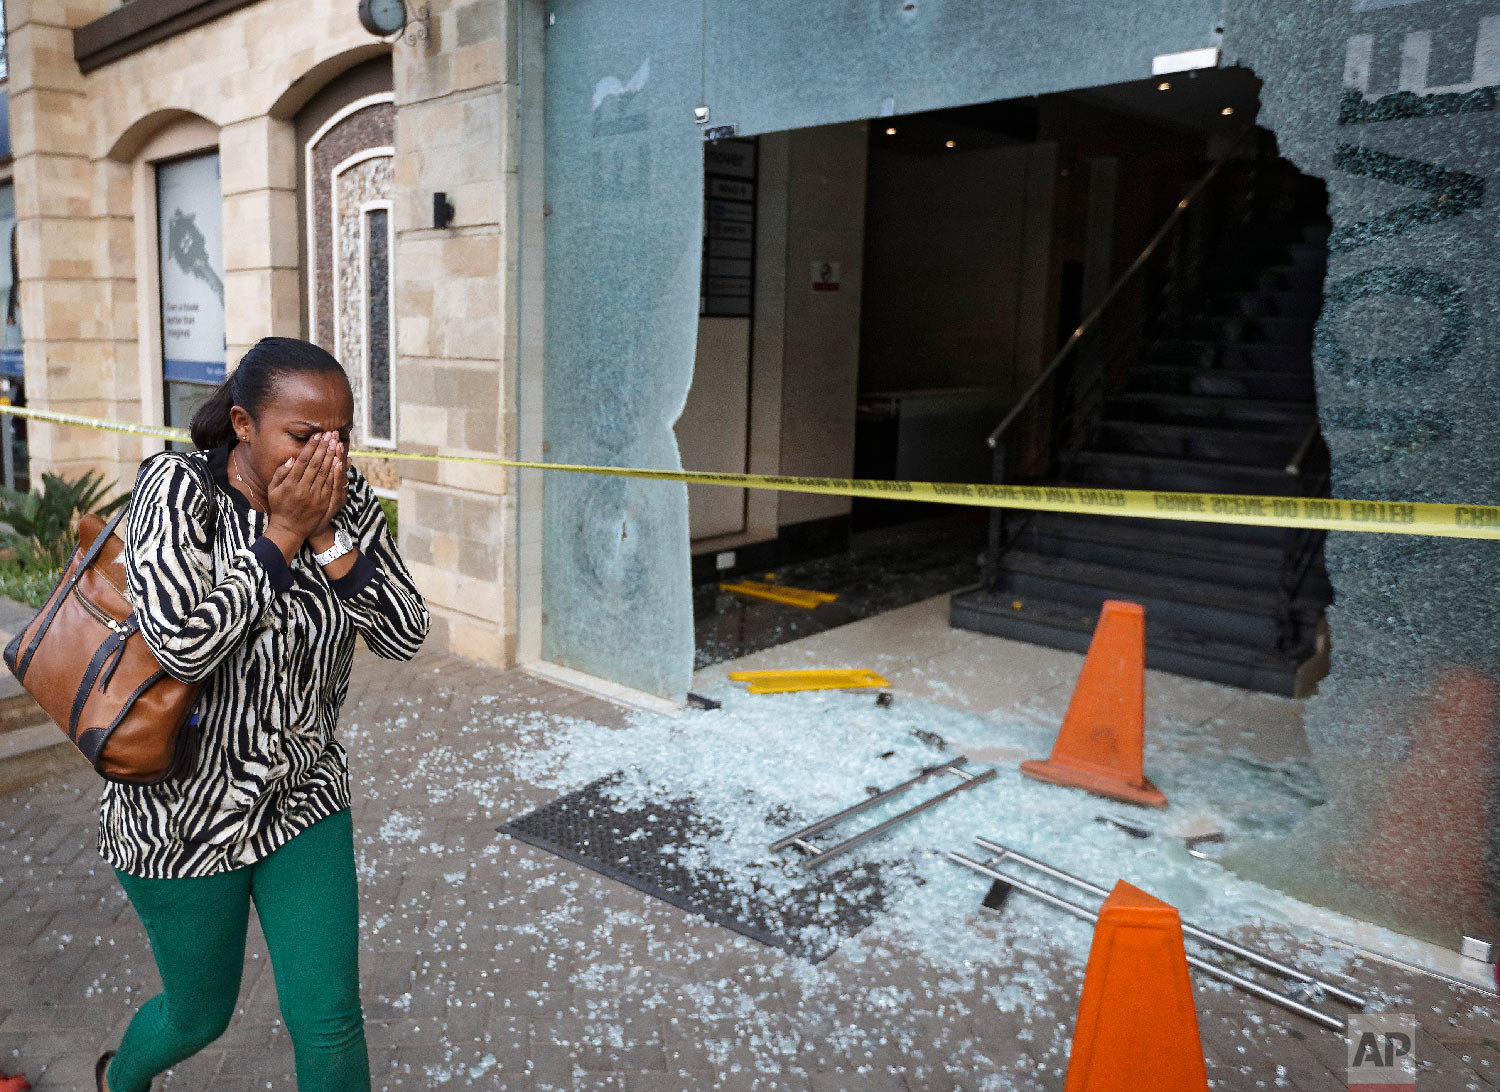 A woman reacts as she flees the scene at a hotel complex in Nairobi, Kenya, Jan. 15, 2019. (AP Photo/Ben Curtis)